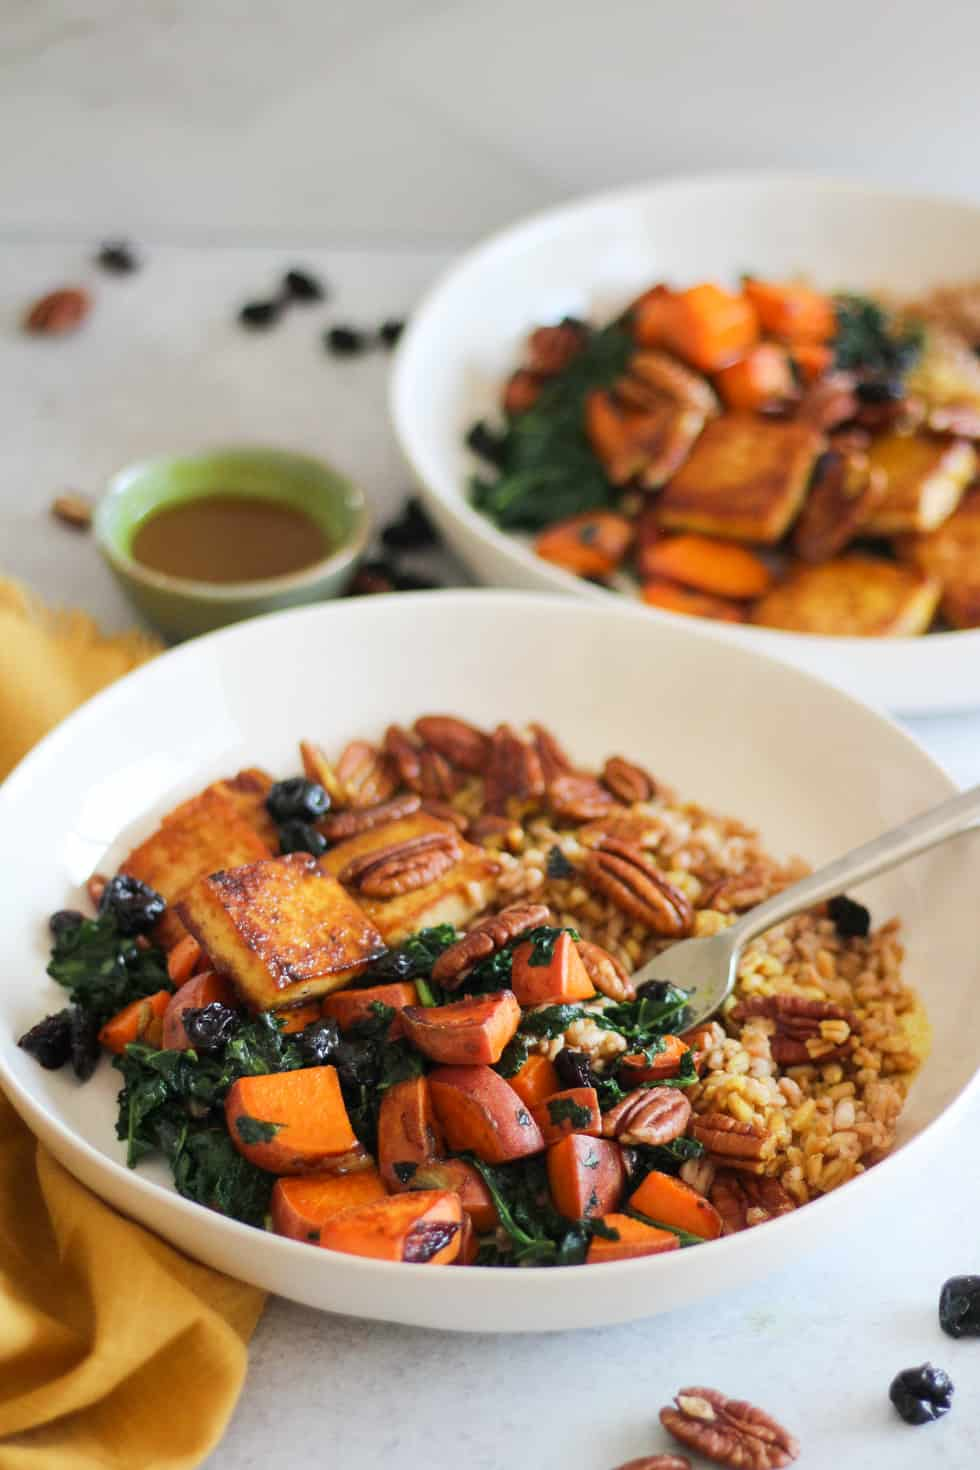 Baked Tofu Harvest Bowls with sweet potato and kale in white bowls with yellow napkin.